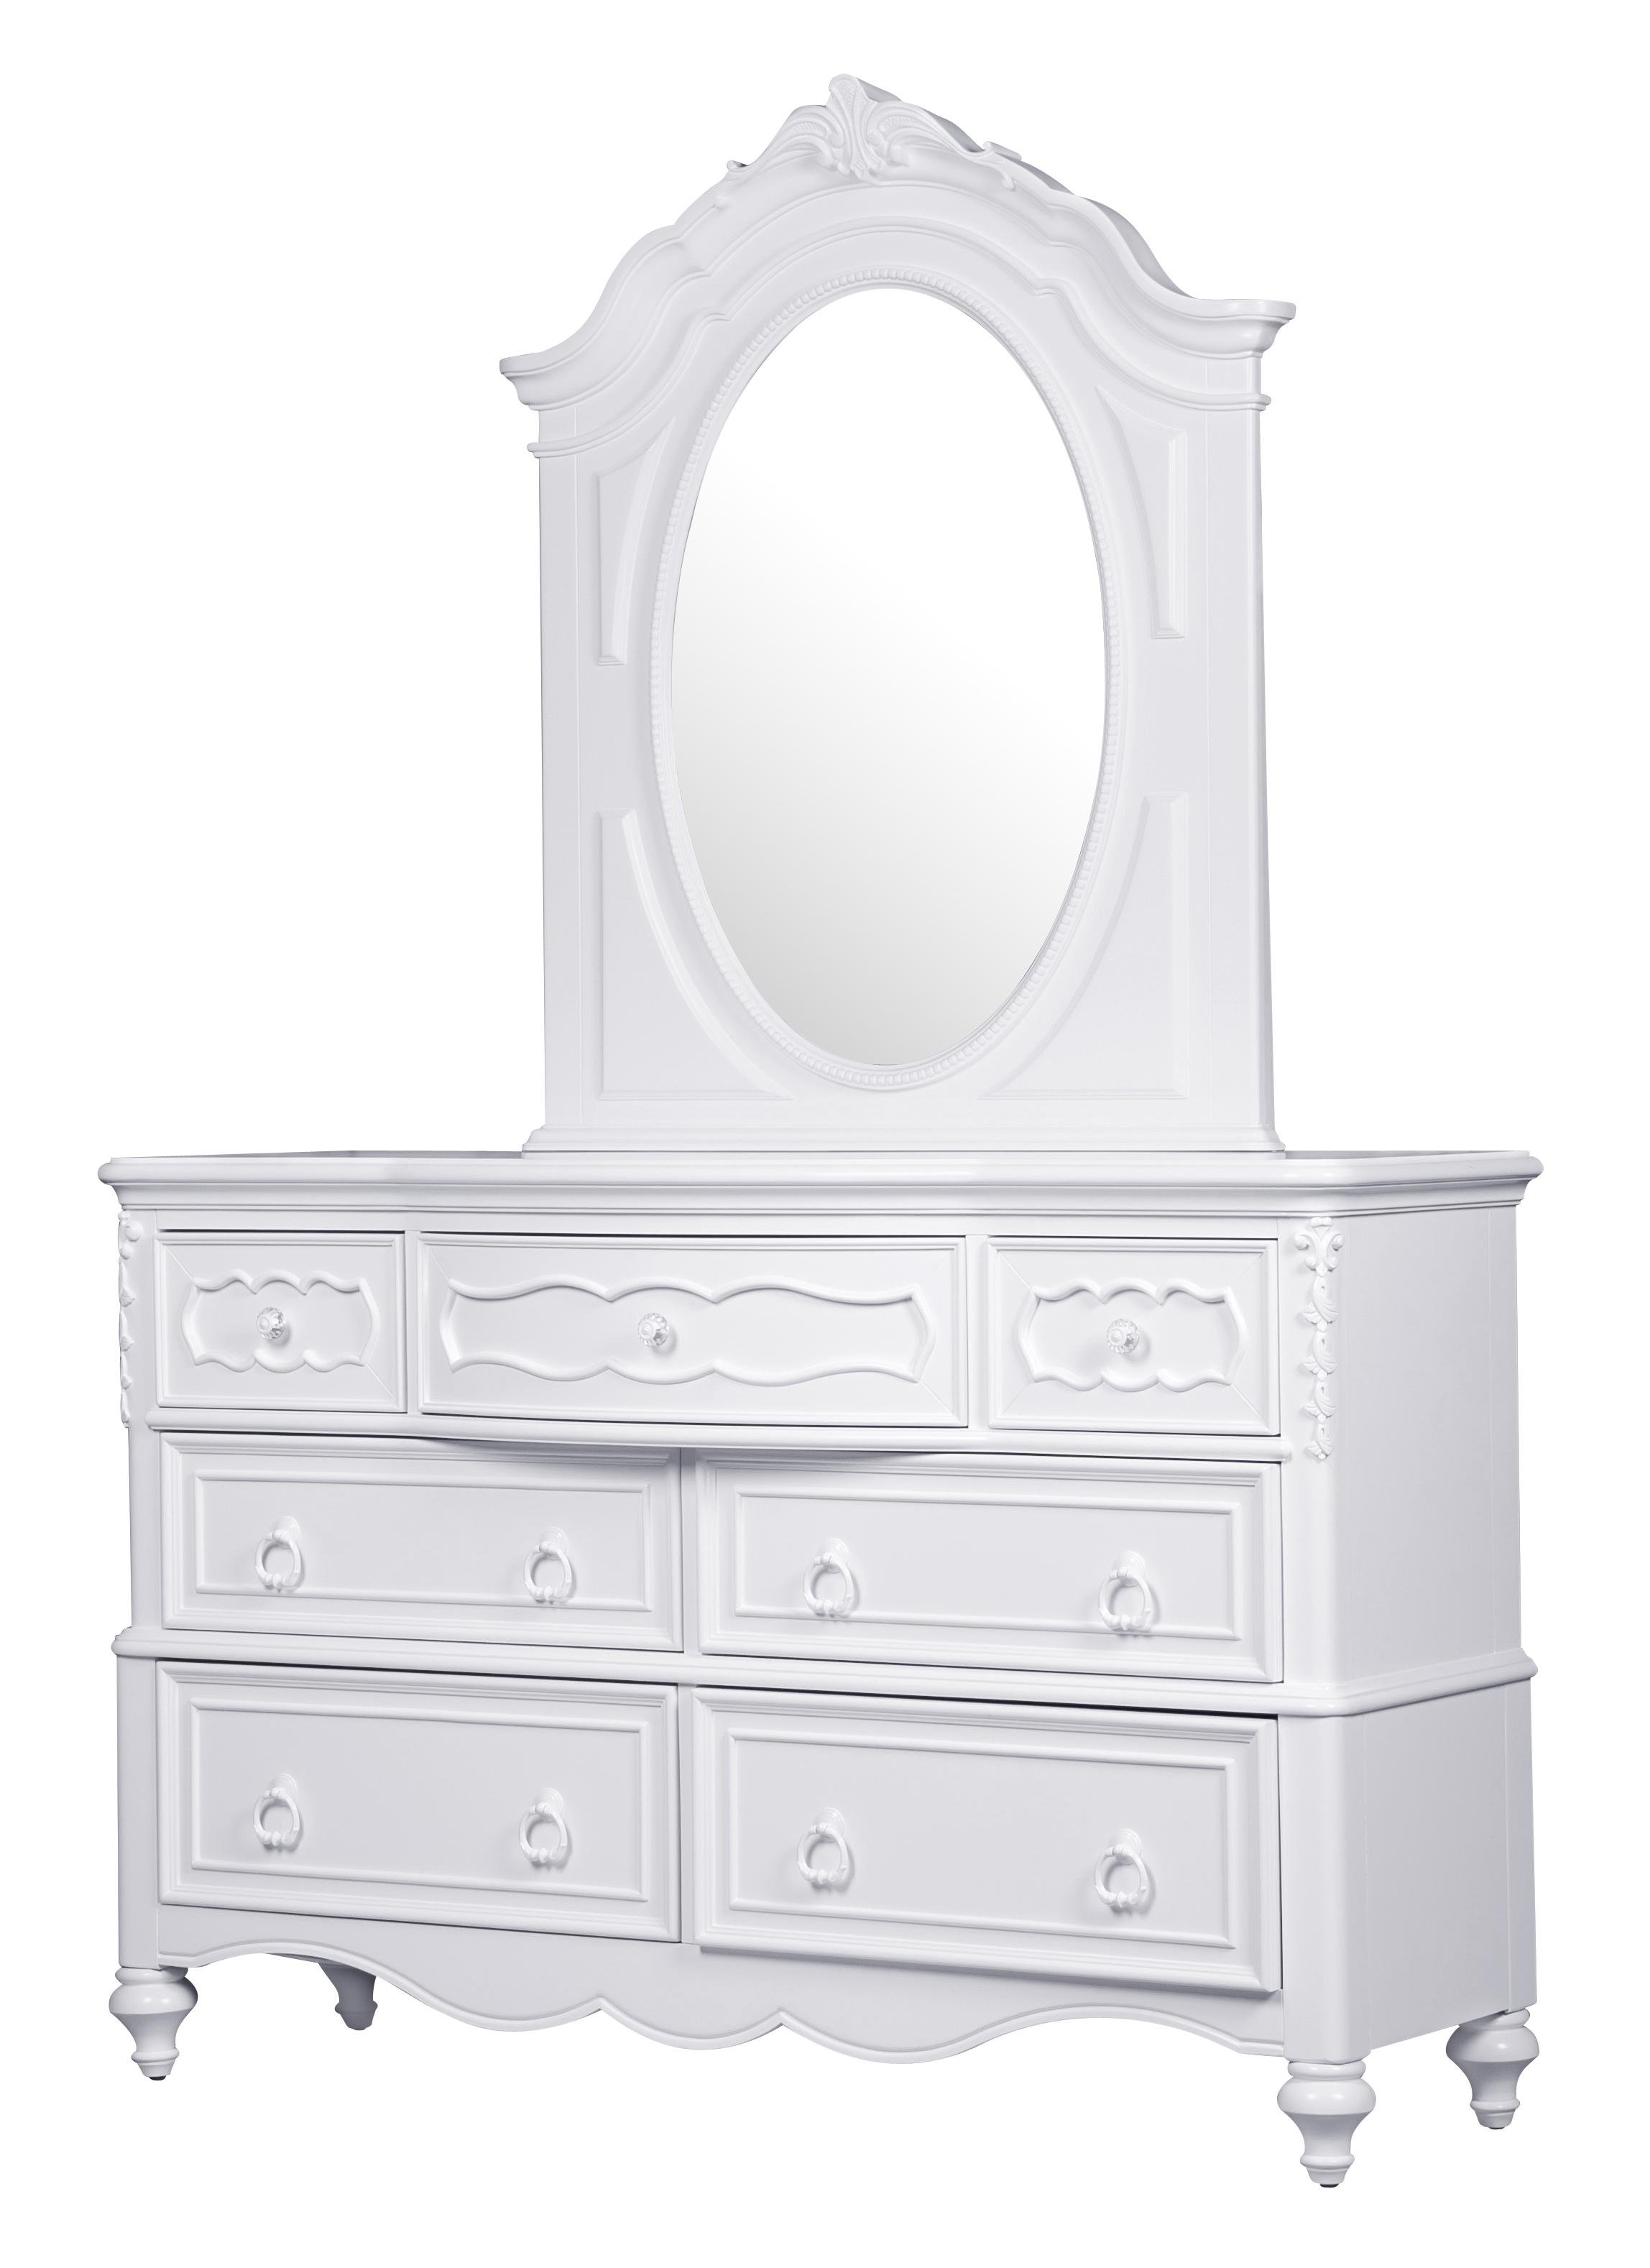 for with white mobilemonitors hemnes breathtaking nursery home trendy hutch ikea dresser